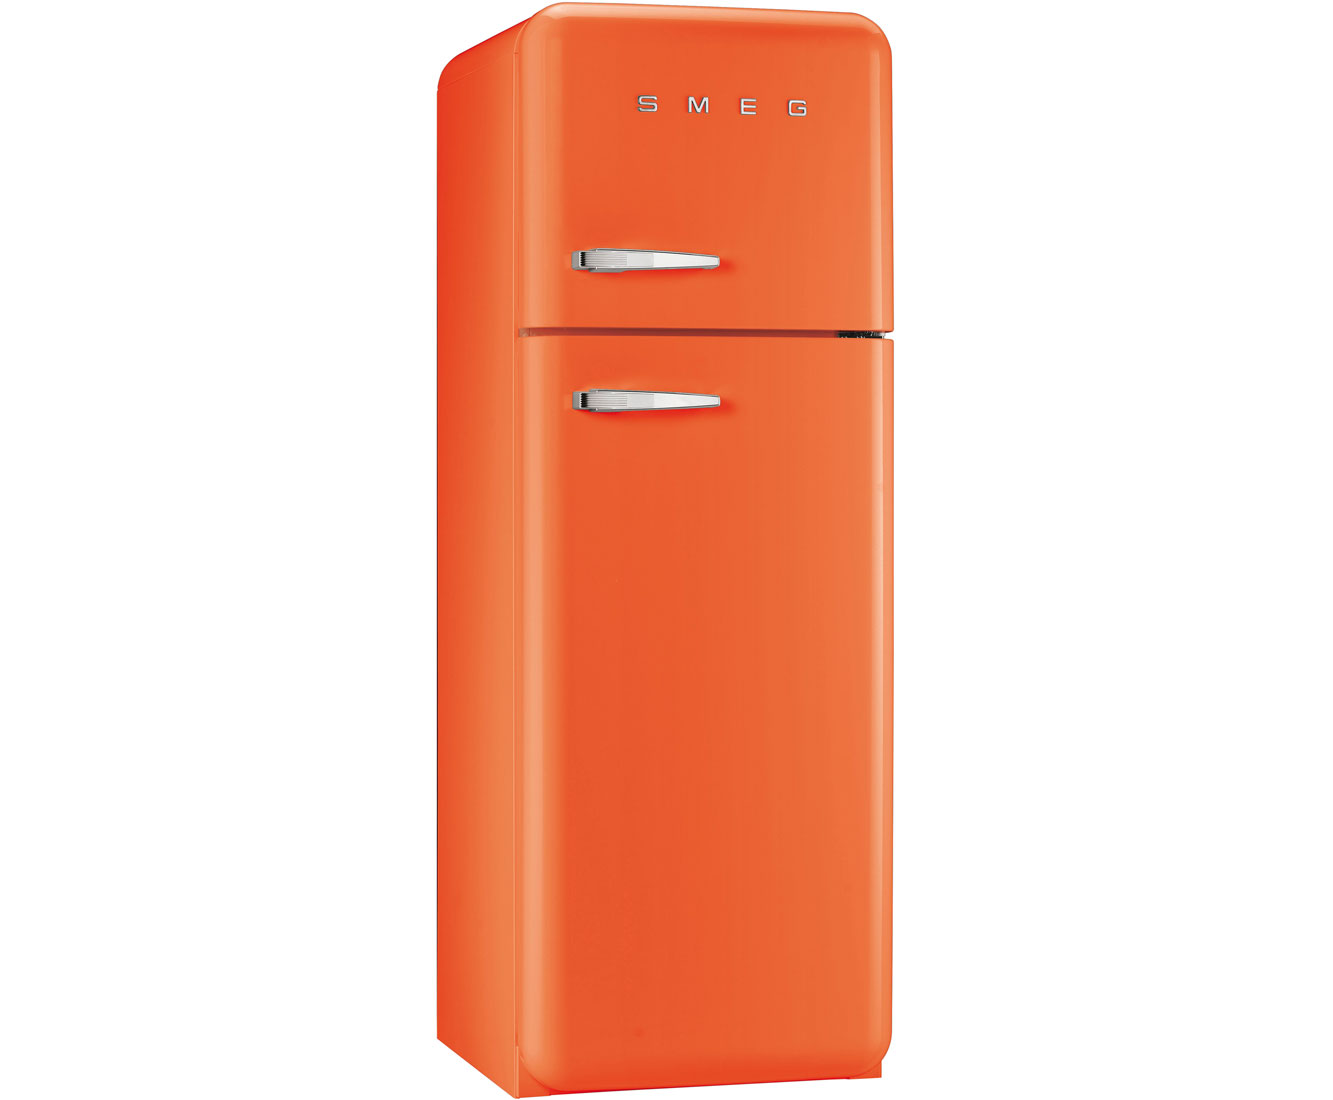 Smeg Right Hand Hinge FAB30RFO 70/30 Fridge Freezer - Orange